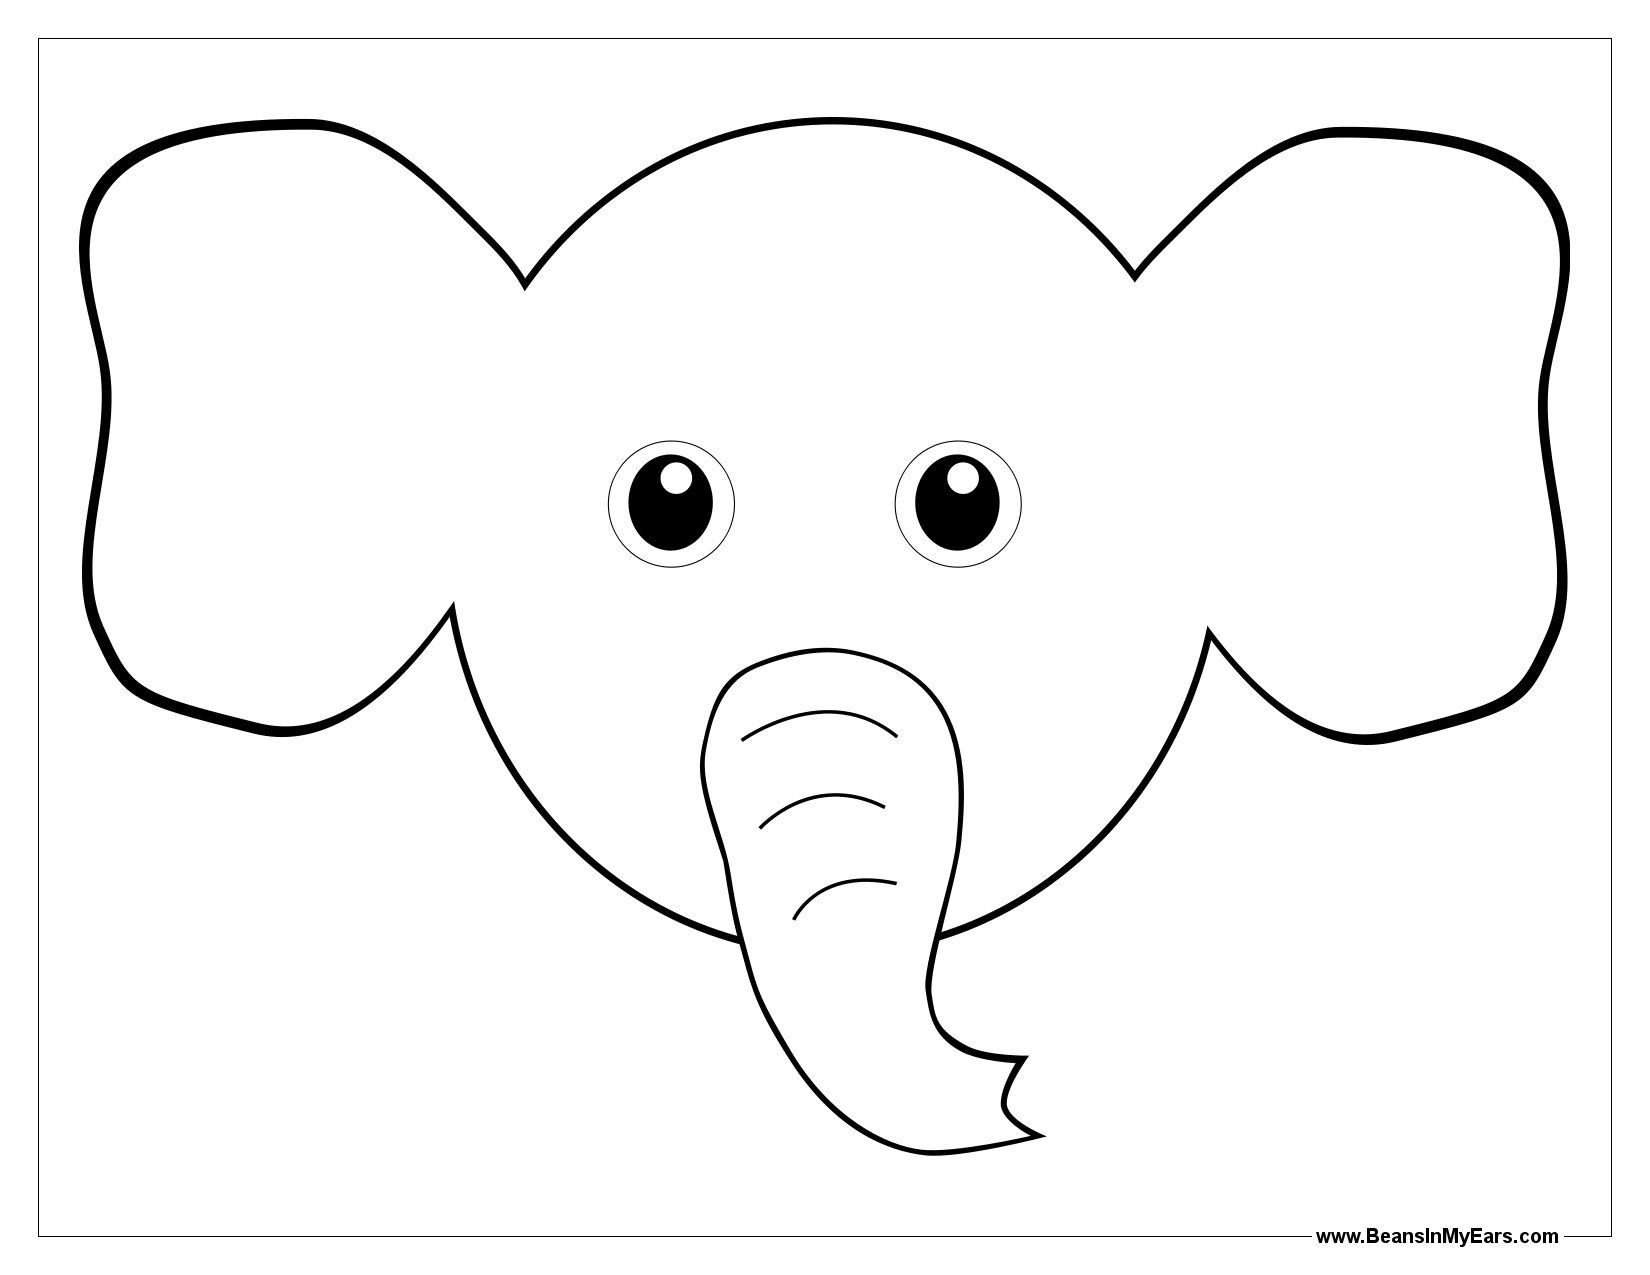 Ears Coloring Pages